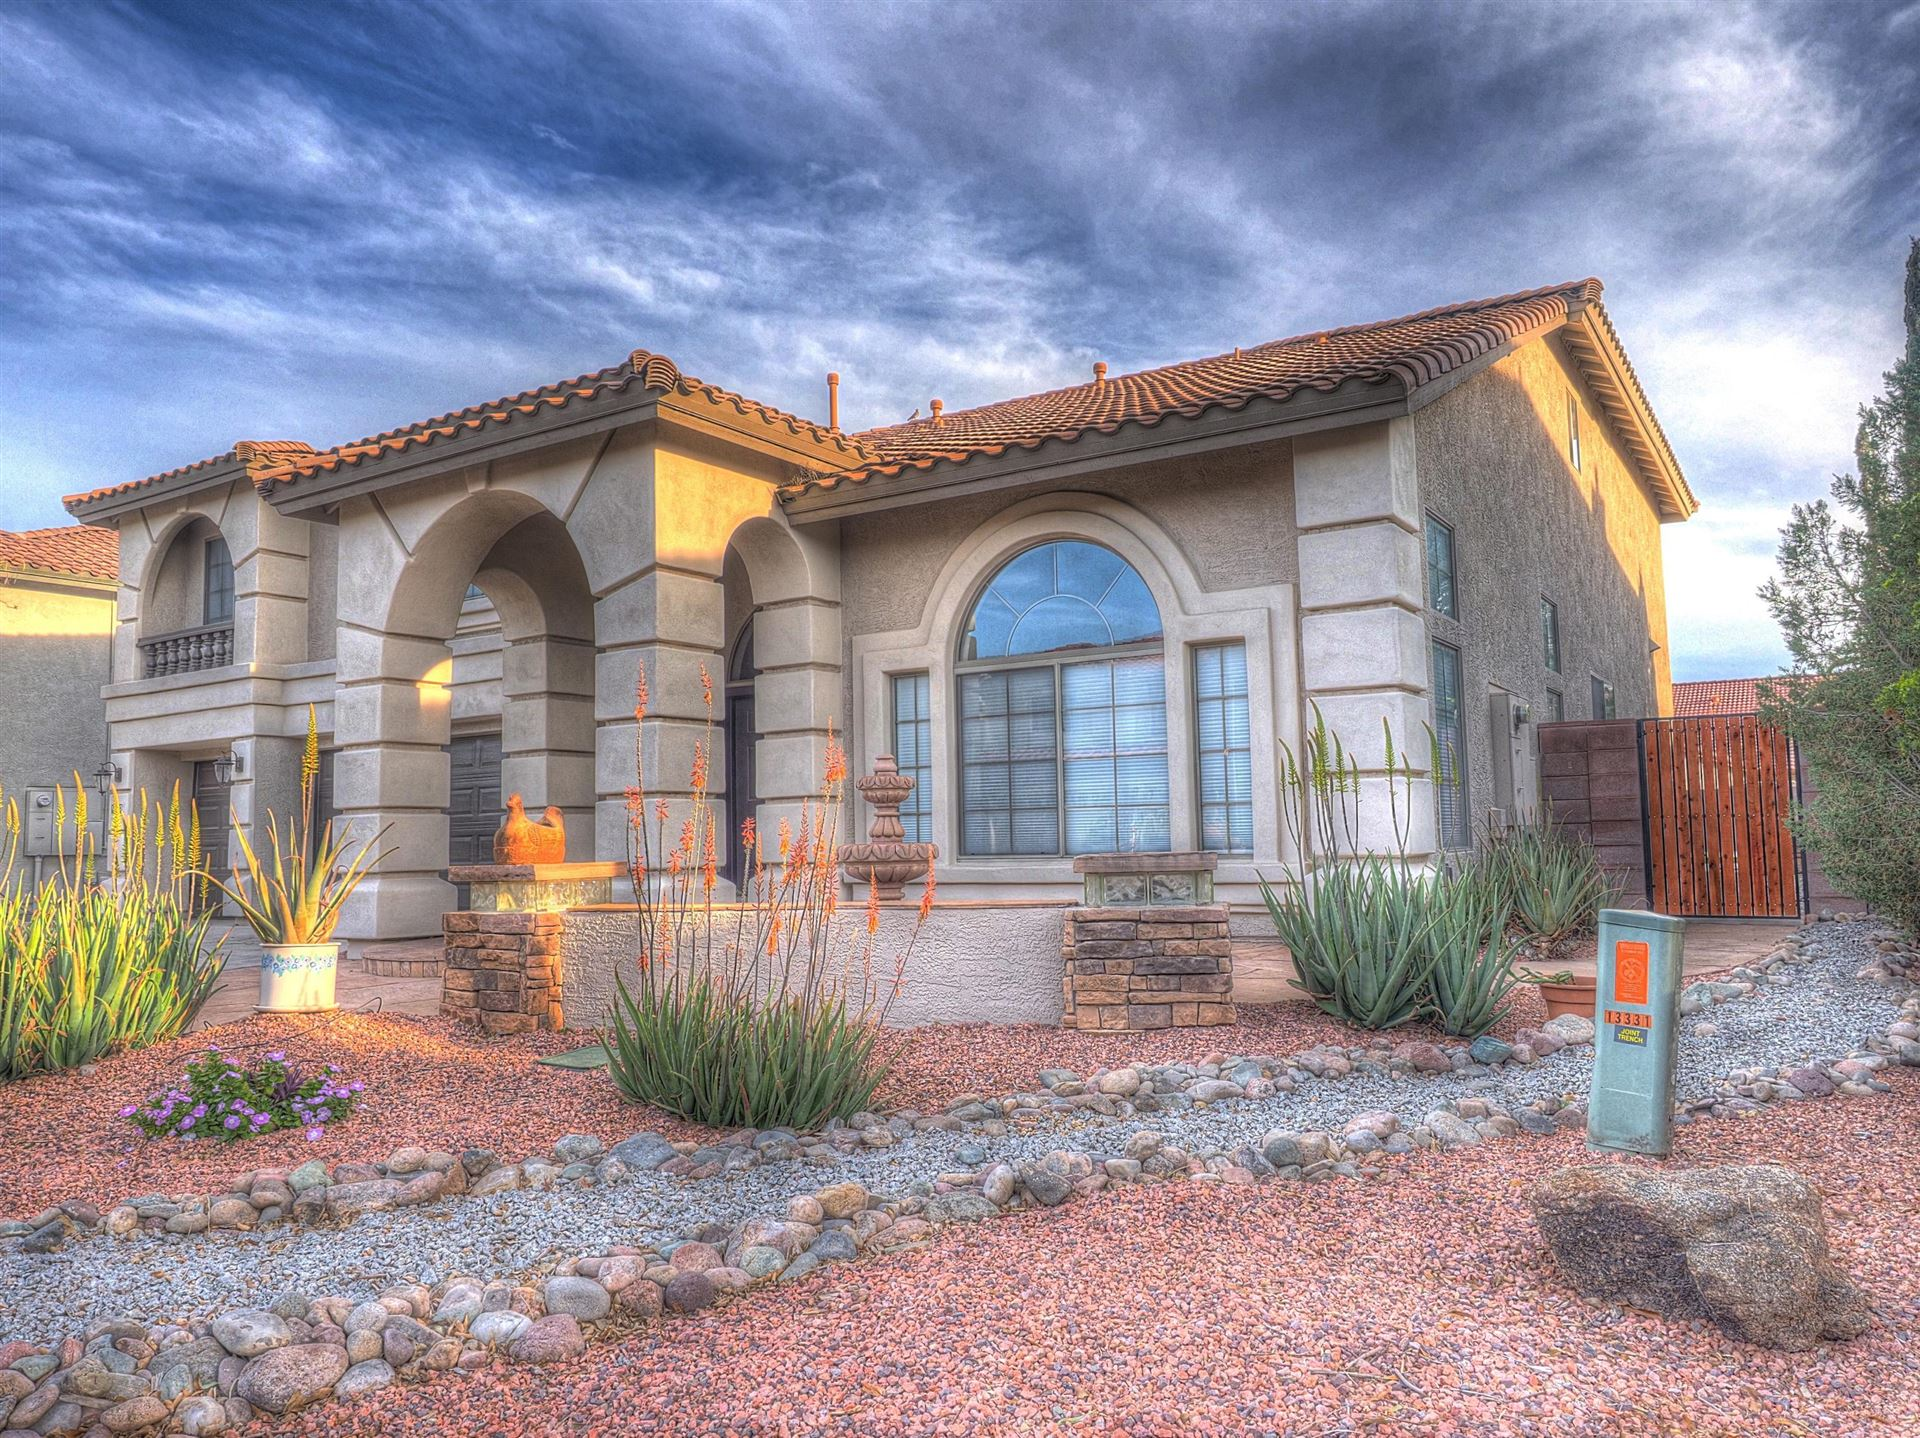 Photo of 13323 W SOLANO Drive, Litchfield Park, AZ 85340 (MLS # 6233581)